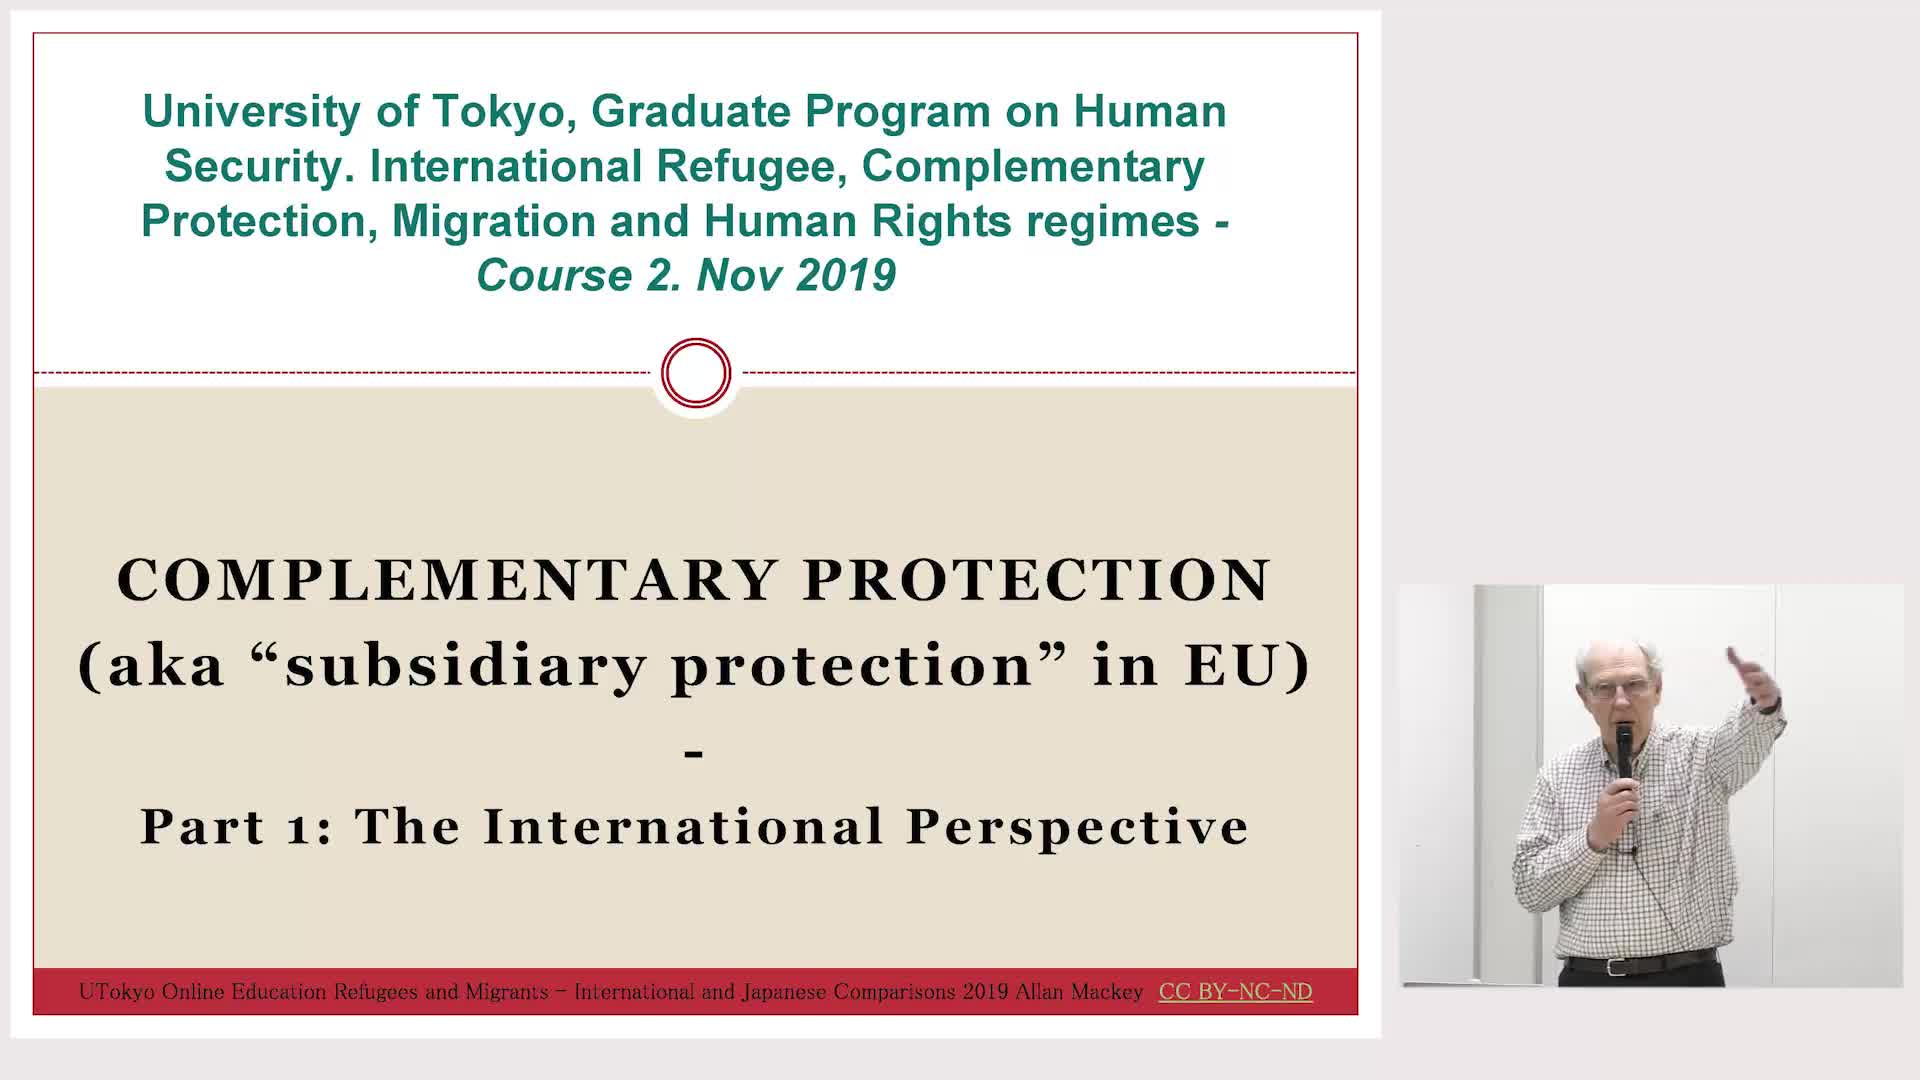 Refugees and Migrants - International and Japanese Comparisons (1)